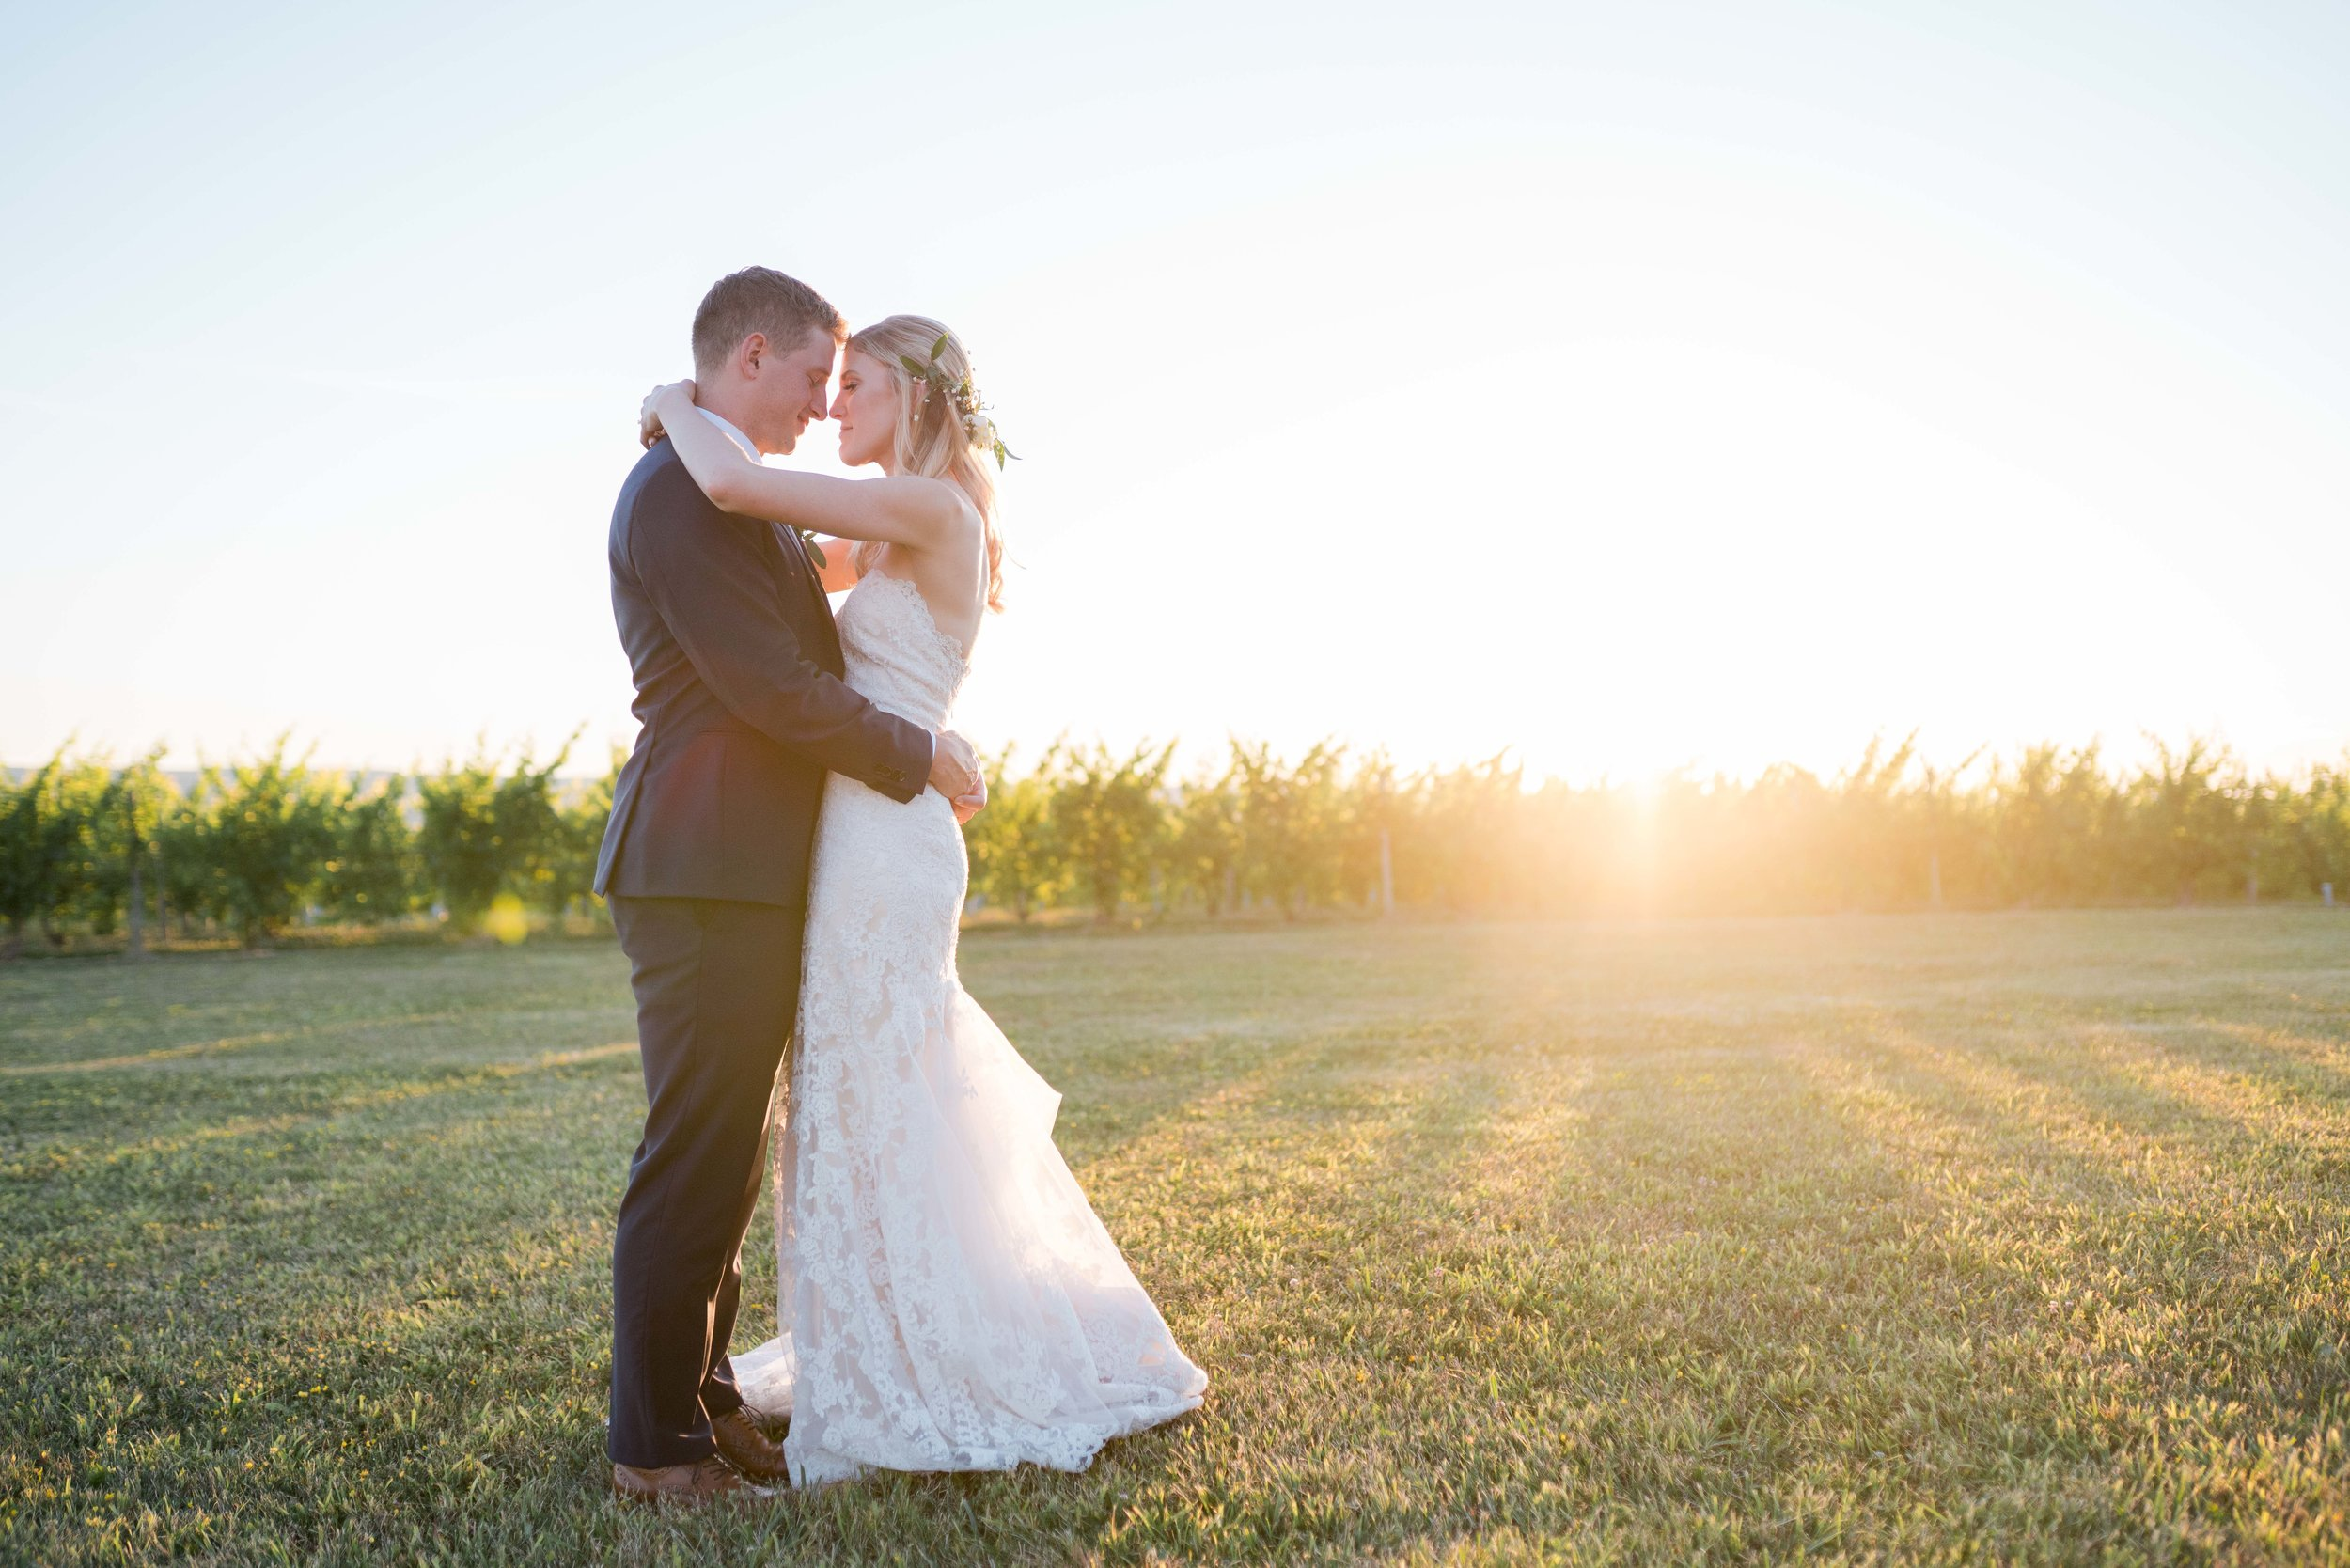 Wedding Photography at Wagner Vineyards Ginny Lee Cafe Finger Lakes by Stefan Ludwig Photography-86.jpg